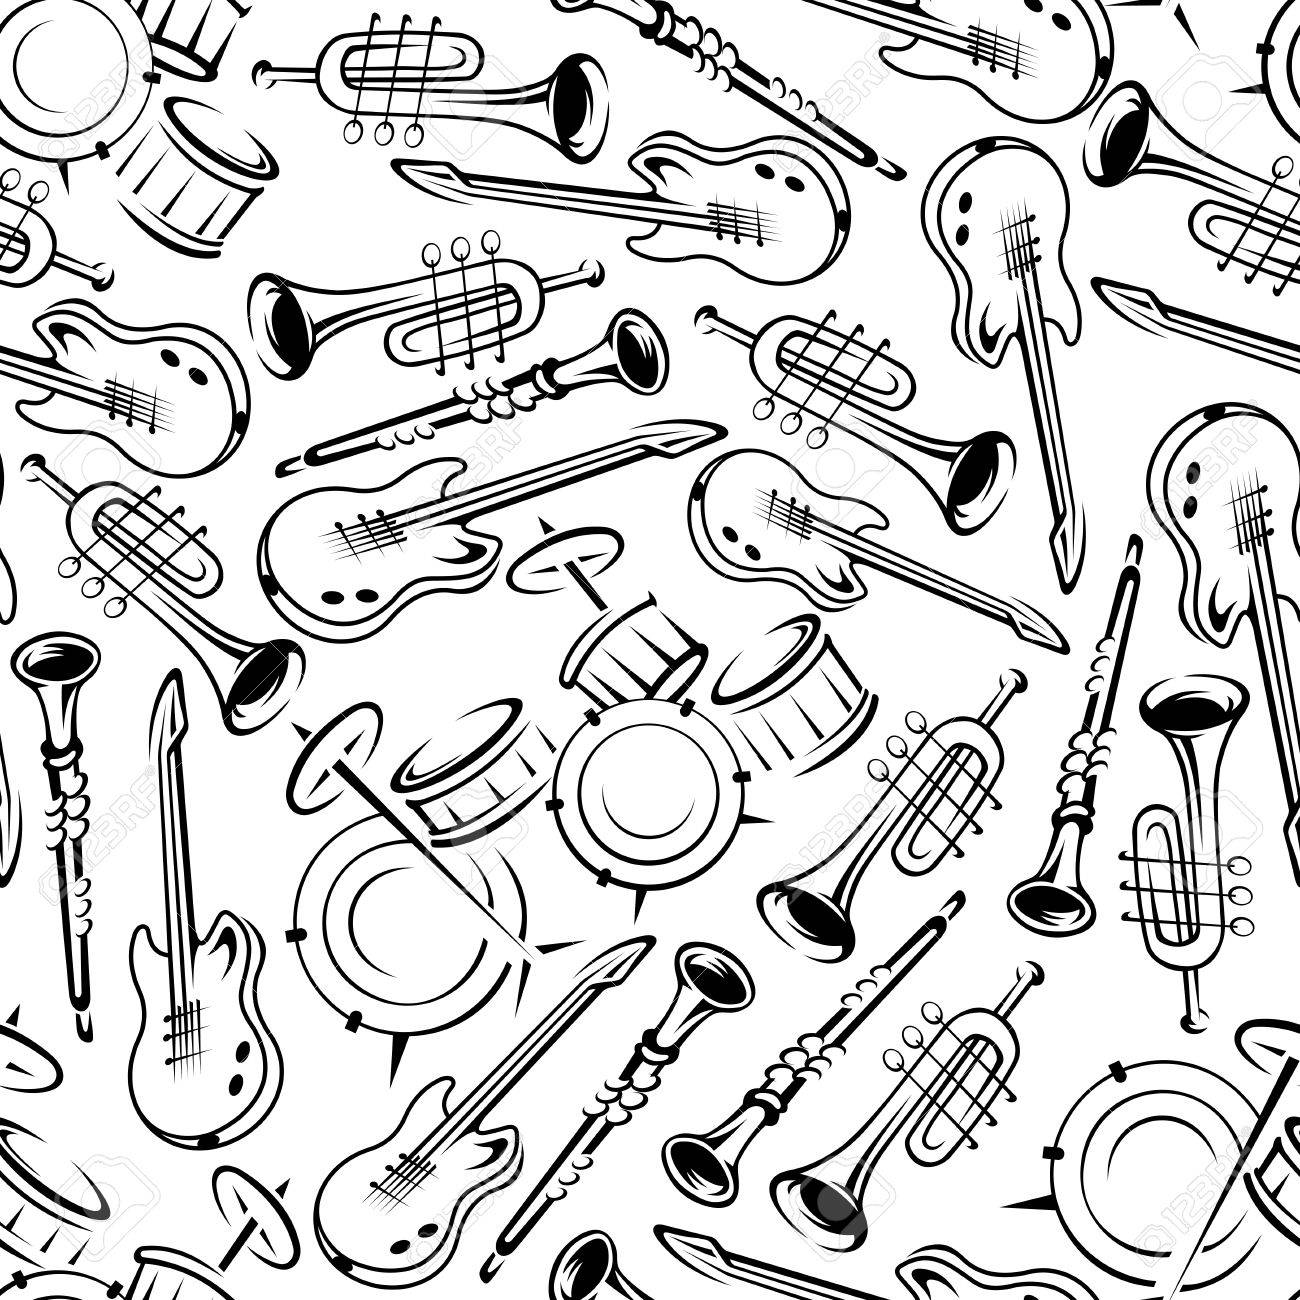 Black And White Jazz Band Or Orchestra Musical Instruments Seamless Pattern With Outlined Guitars Drum